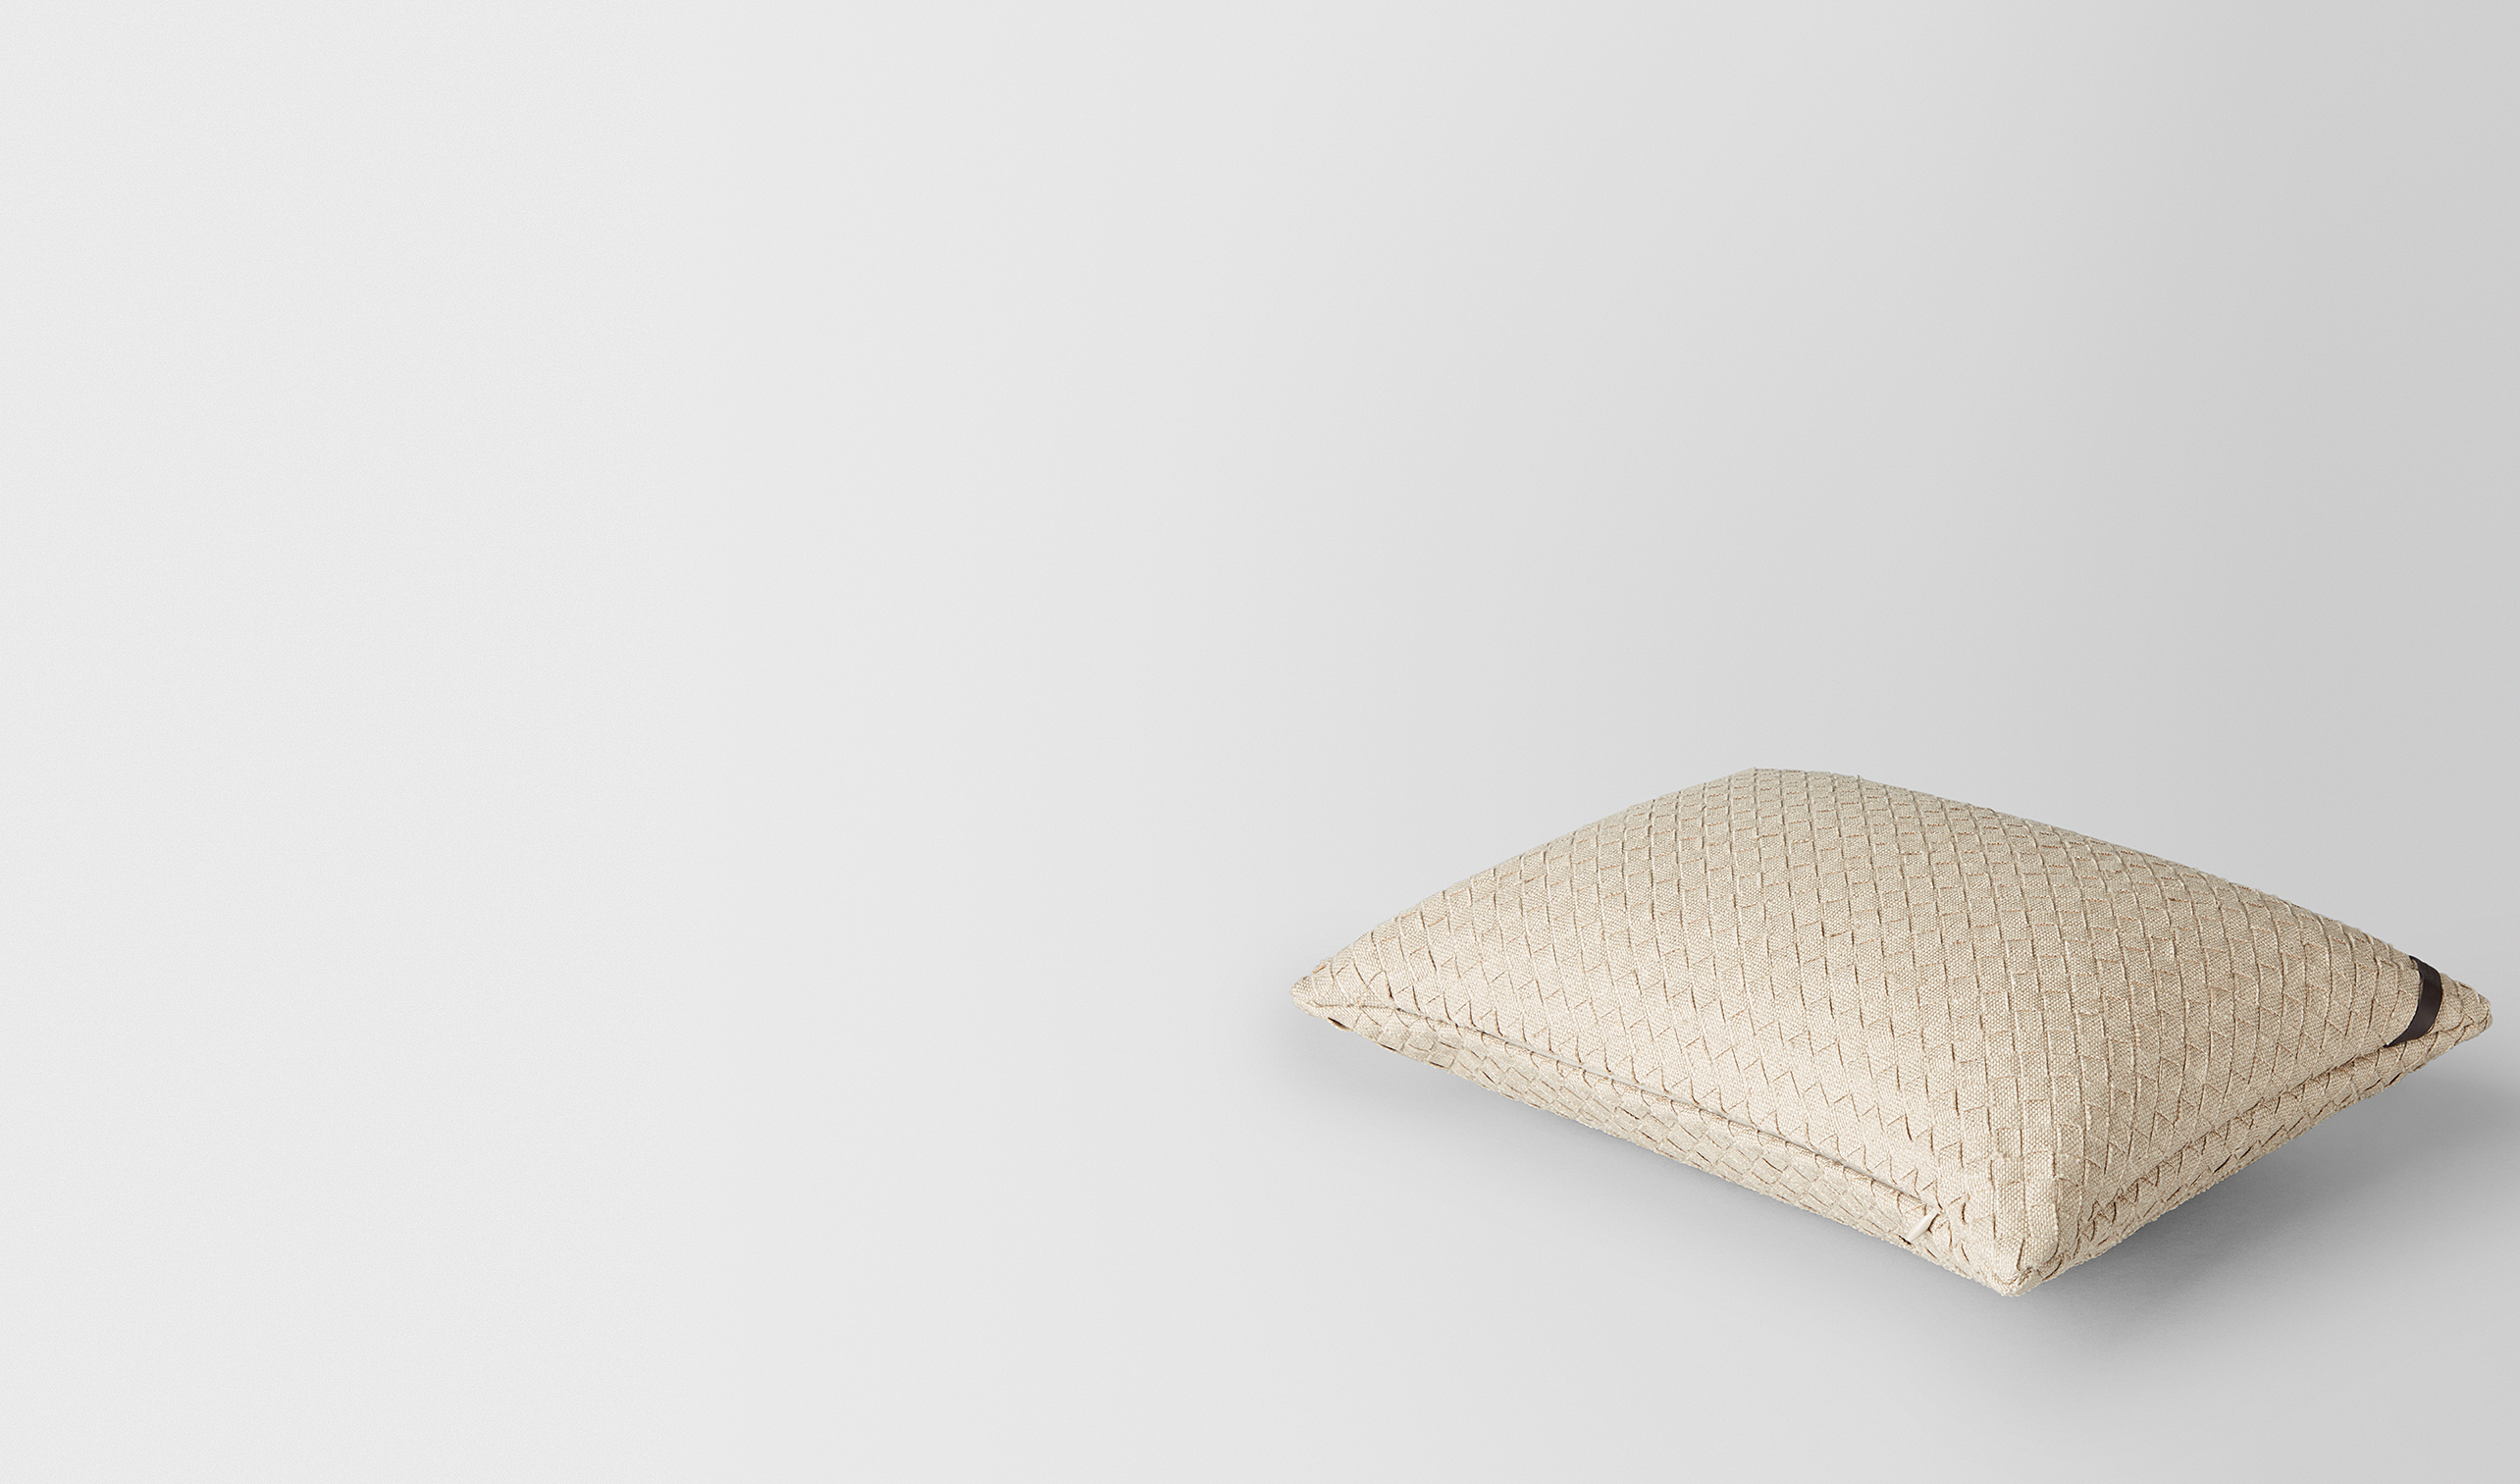 BOTTEGA VENETA Pillow and blanket E PILLOW IN PALLADIO INTRECCIATO LINEN pl